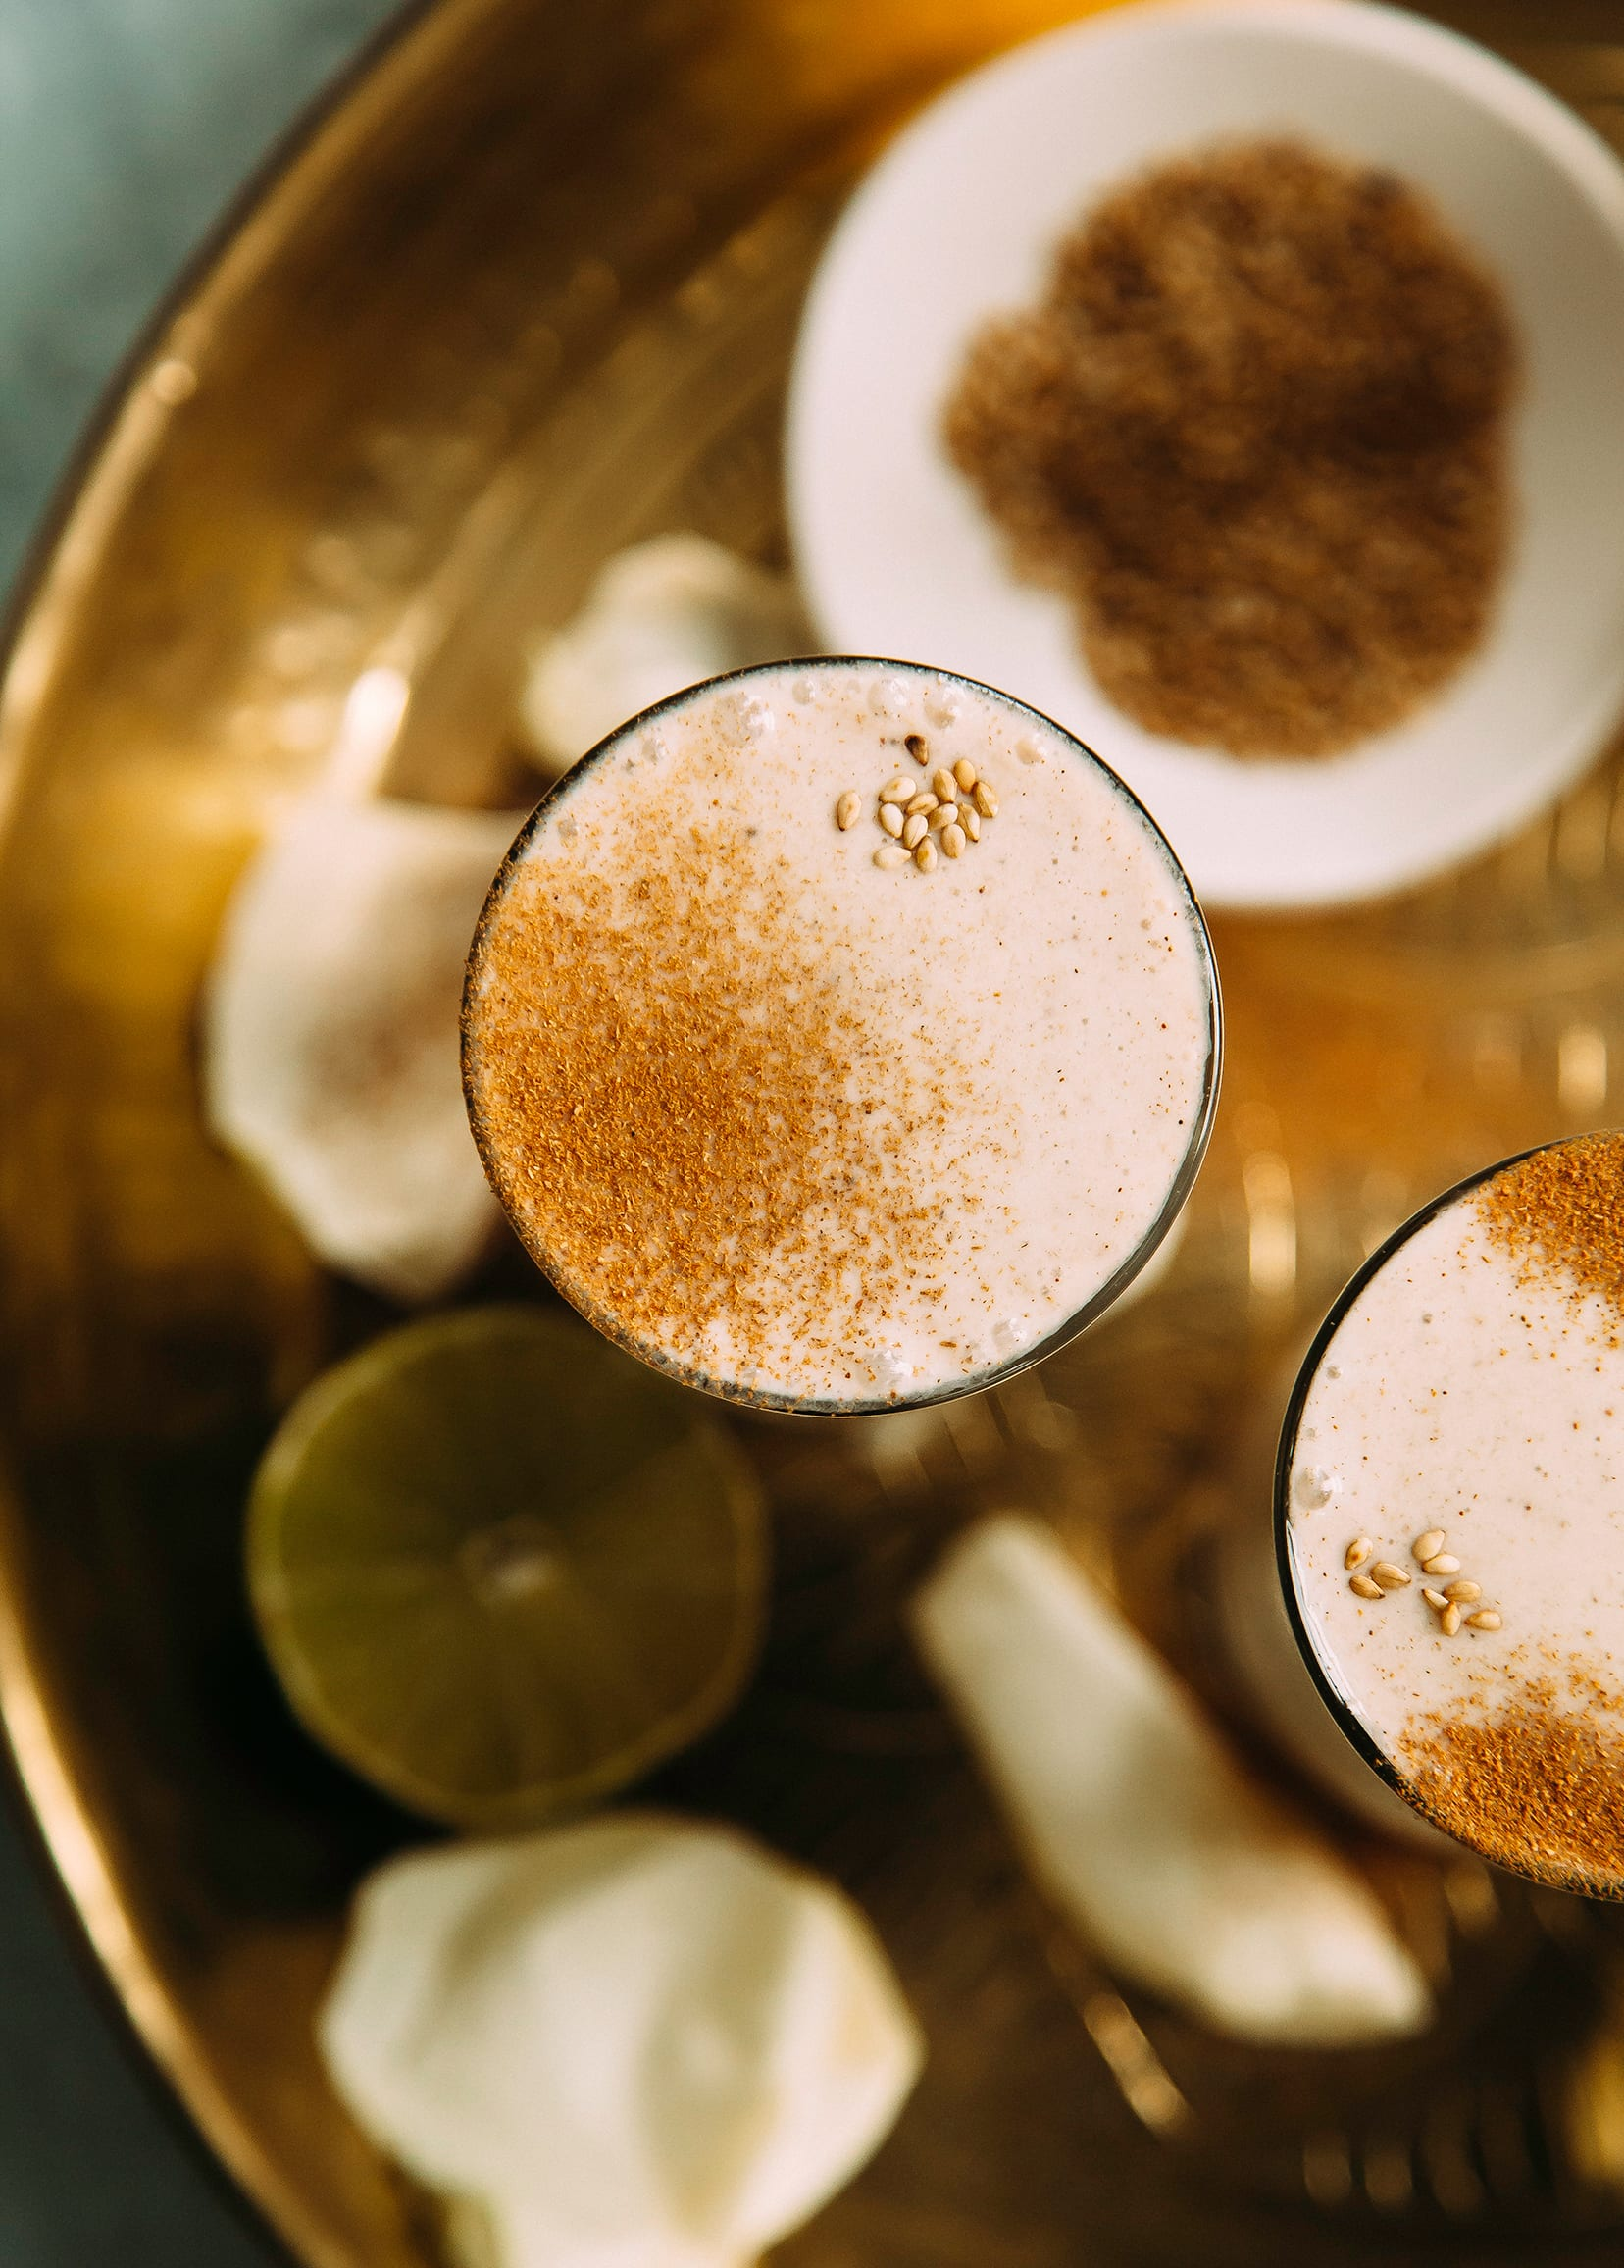 An overhead and up close shot of a creamy beige beverage in a slim clear glass beverage on top of a gold, etched tray. The beverage is garnished with ground cinnamon and sesame seeds.